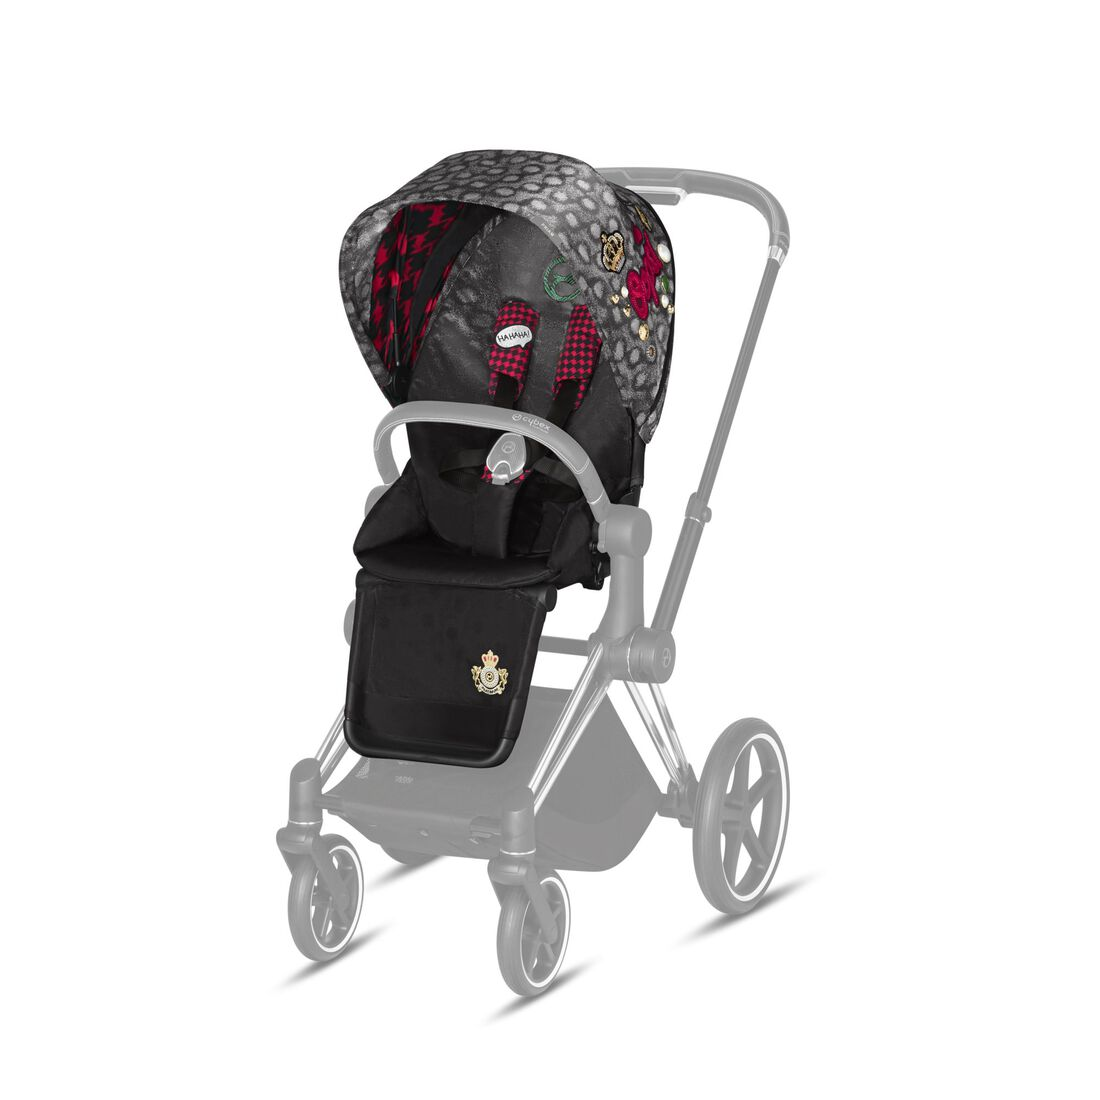 CYBEX Priam Sitzpaket - Rebellious in Rebellious large Bild 1